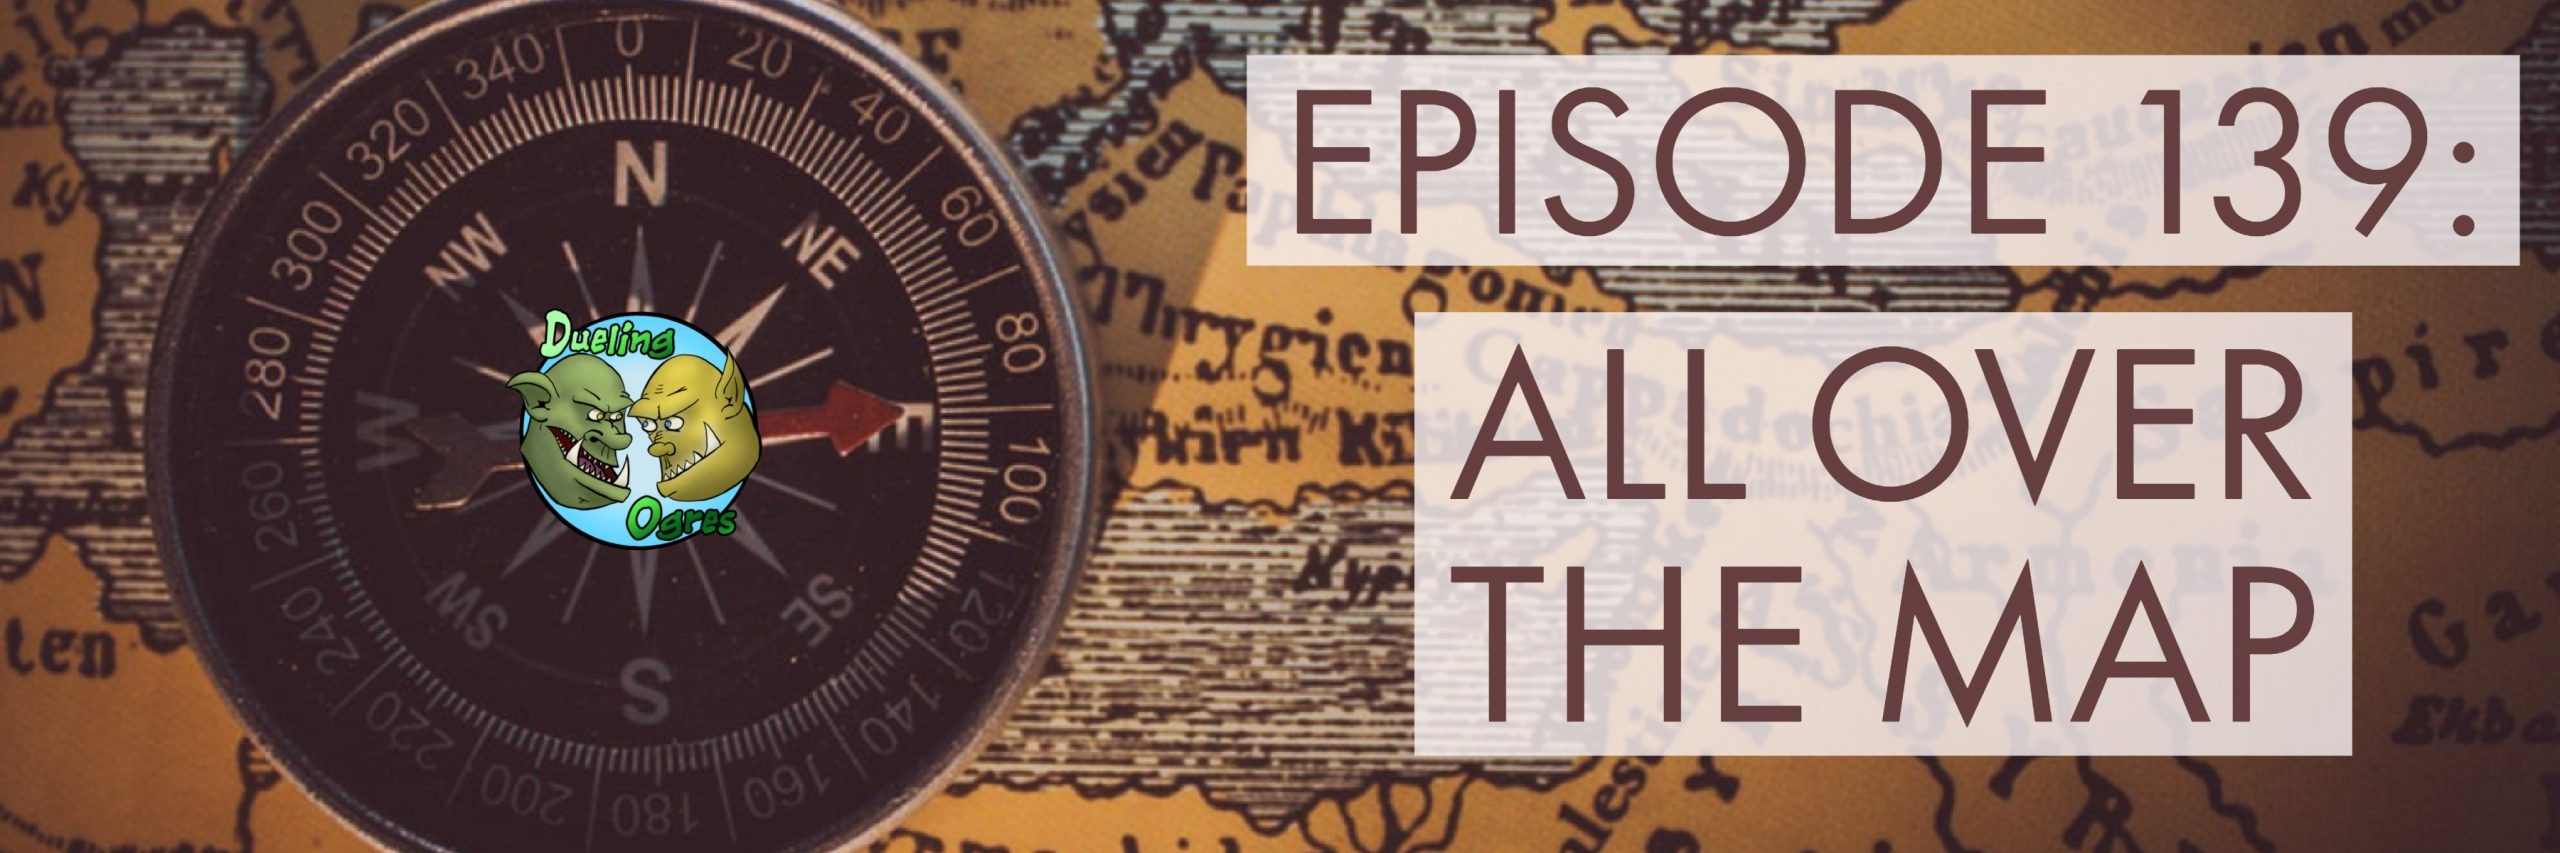 Episode 139: All Over the Map